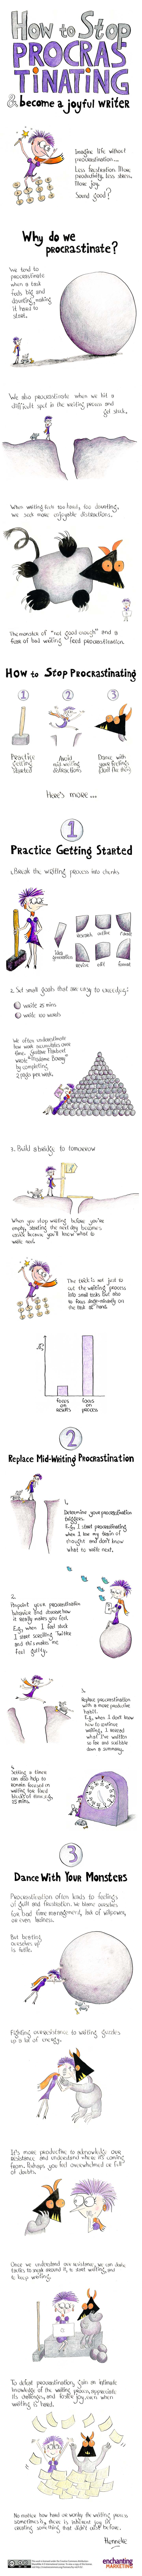 how to stop procrastinating when youre writing infographic